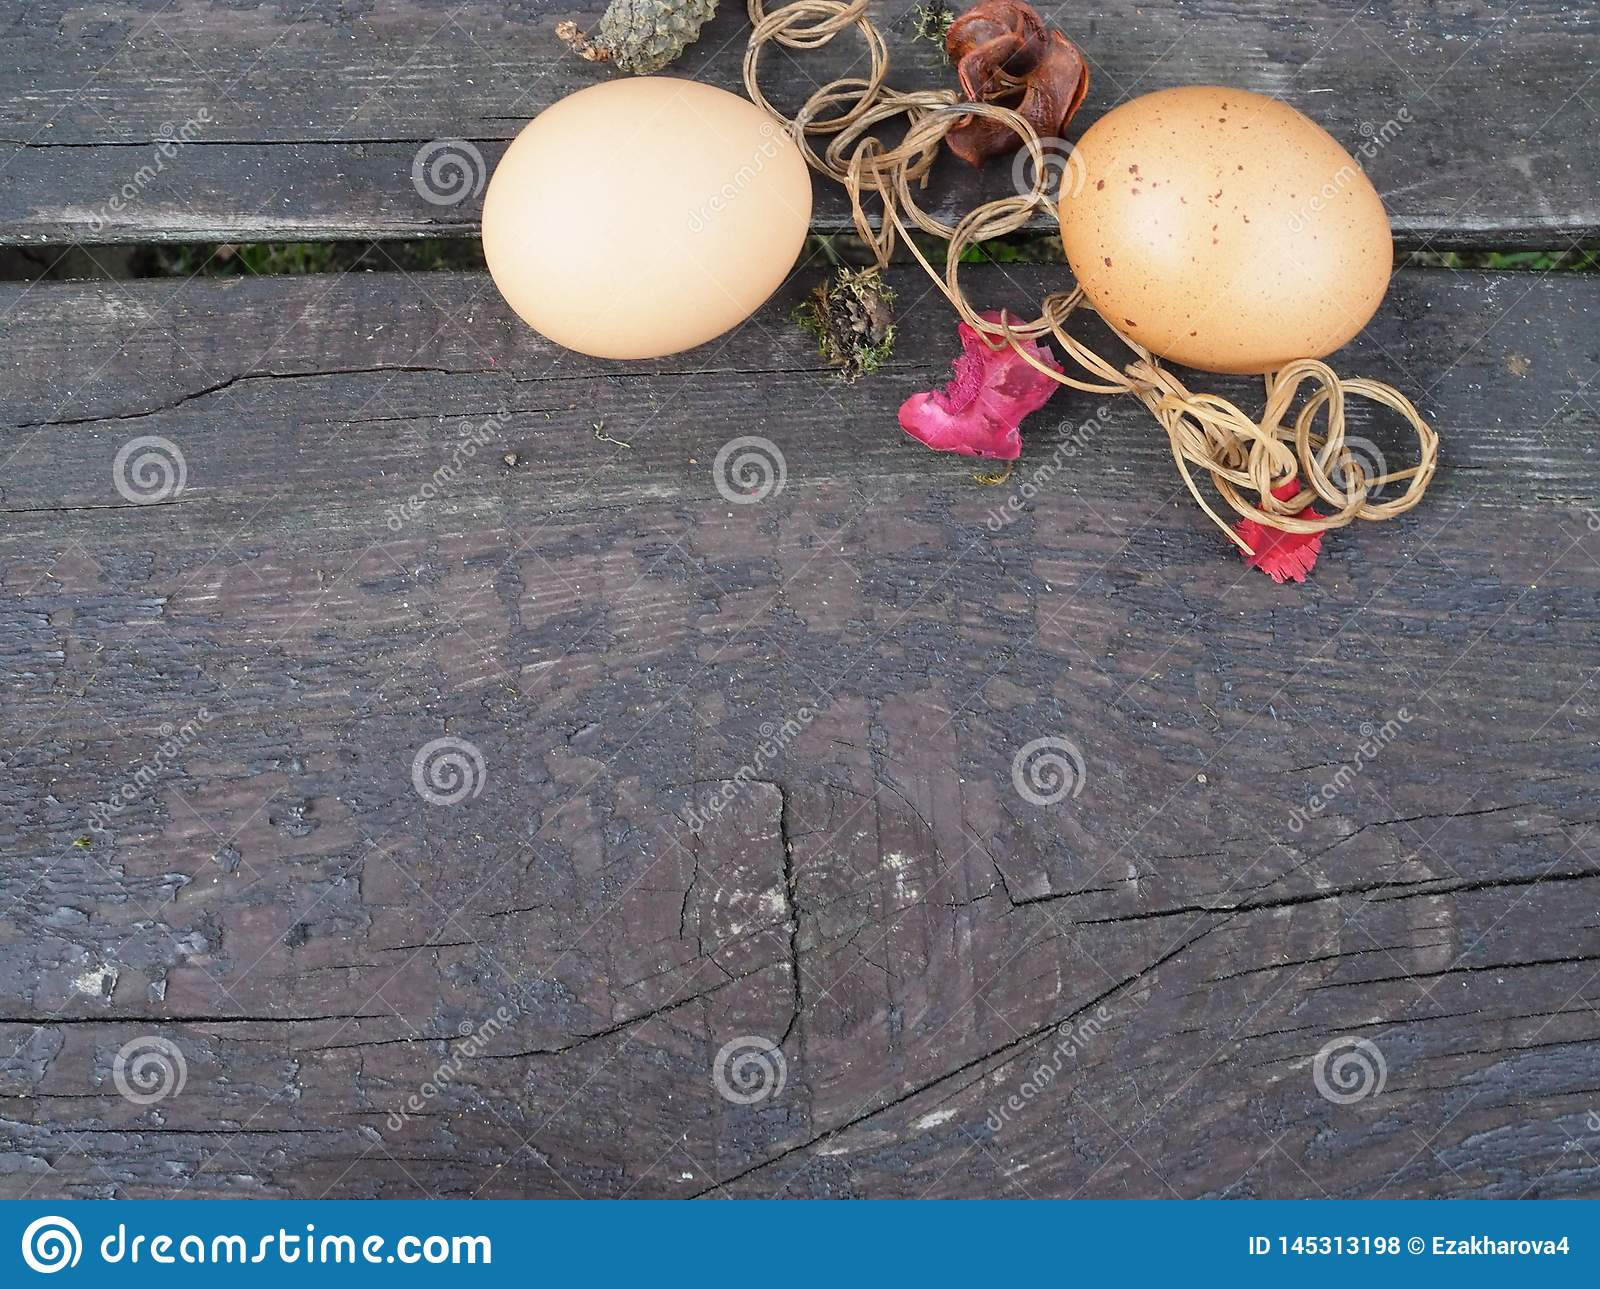 Easter eggs in a basket with decorations on the table